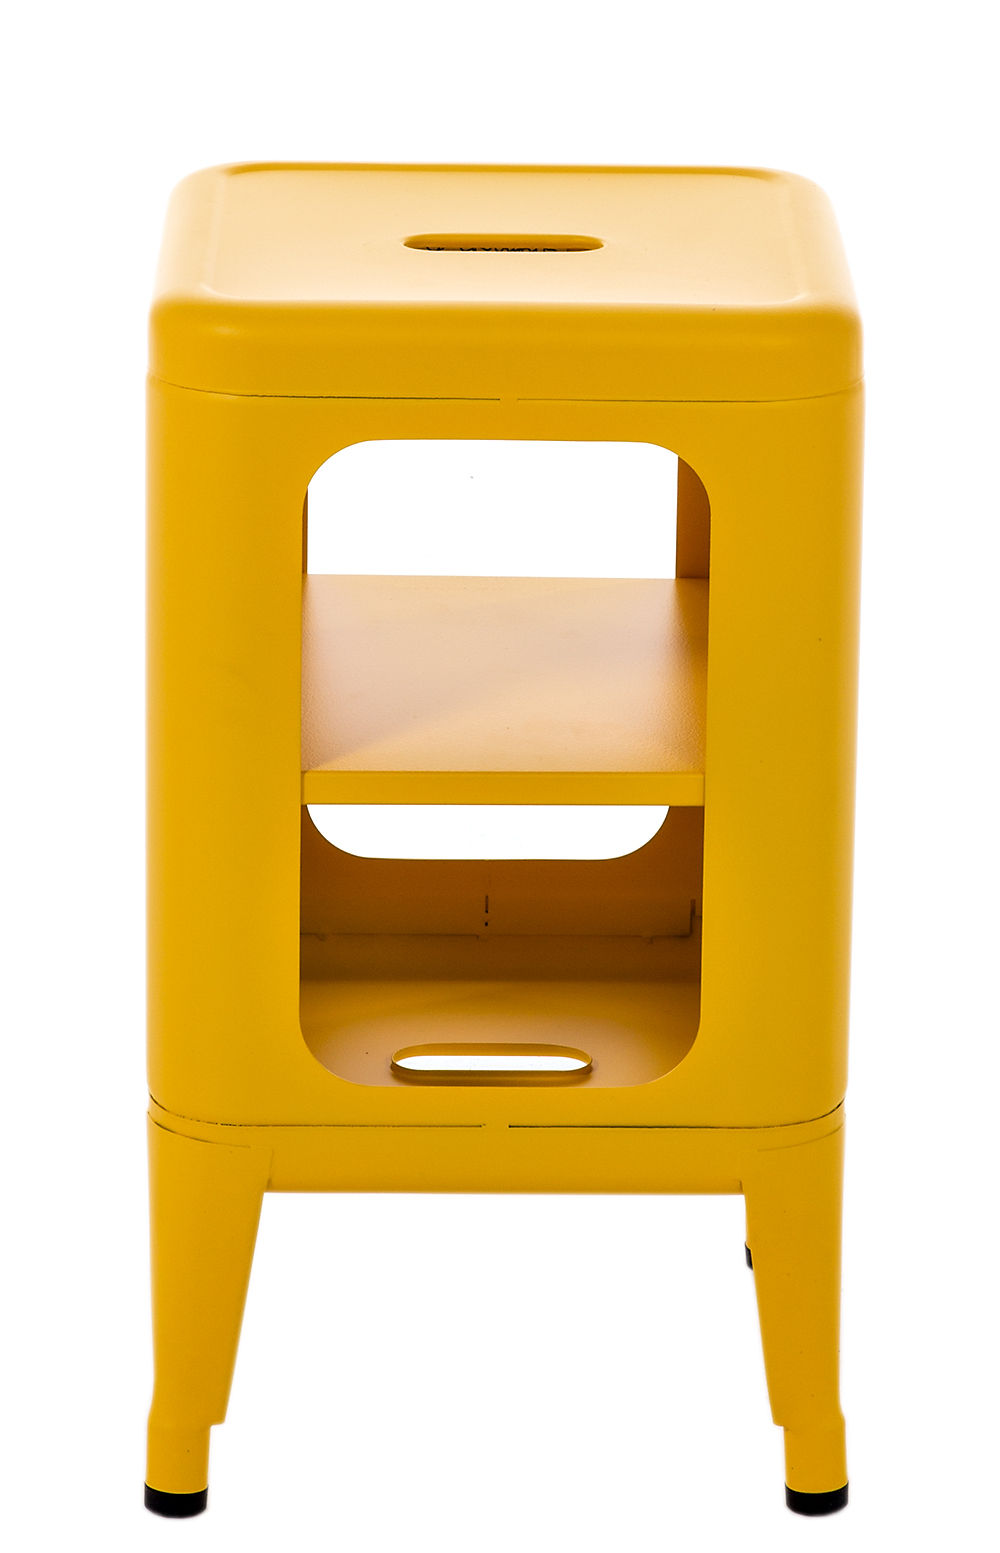 meuble de rangement h 50 cm le corbusier jaune vif tolix. Black Bedroom Furniture Sets. Home Design Ideas